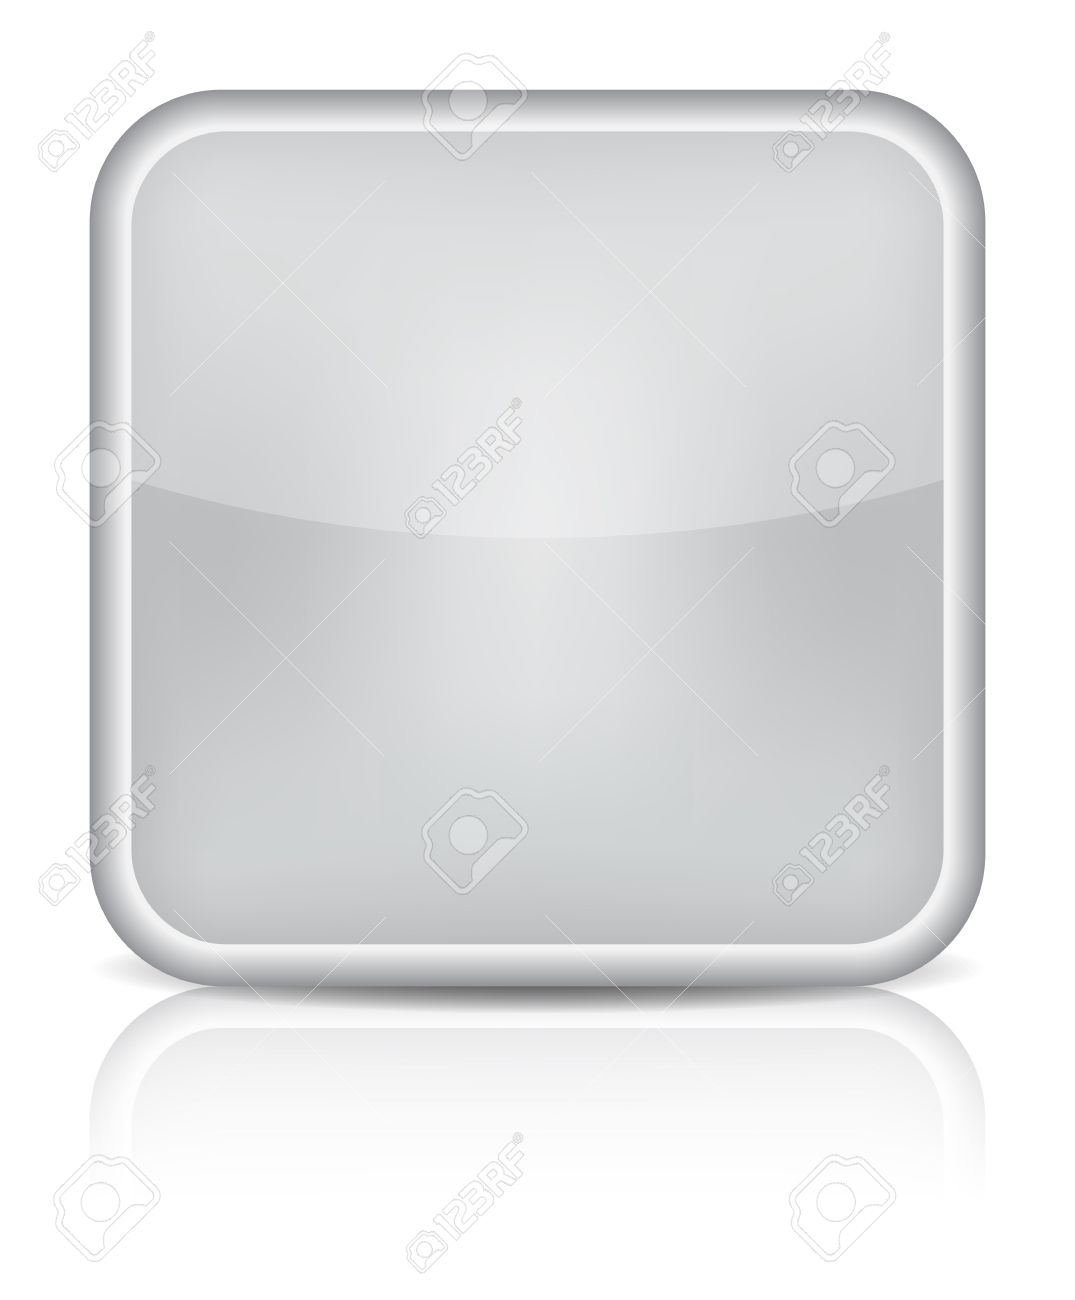 Gray glossy blank internet button. Rounded square shape icon on white background. Stock Vector - 16464284